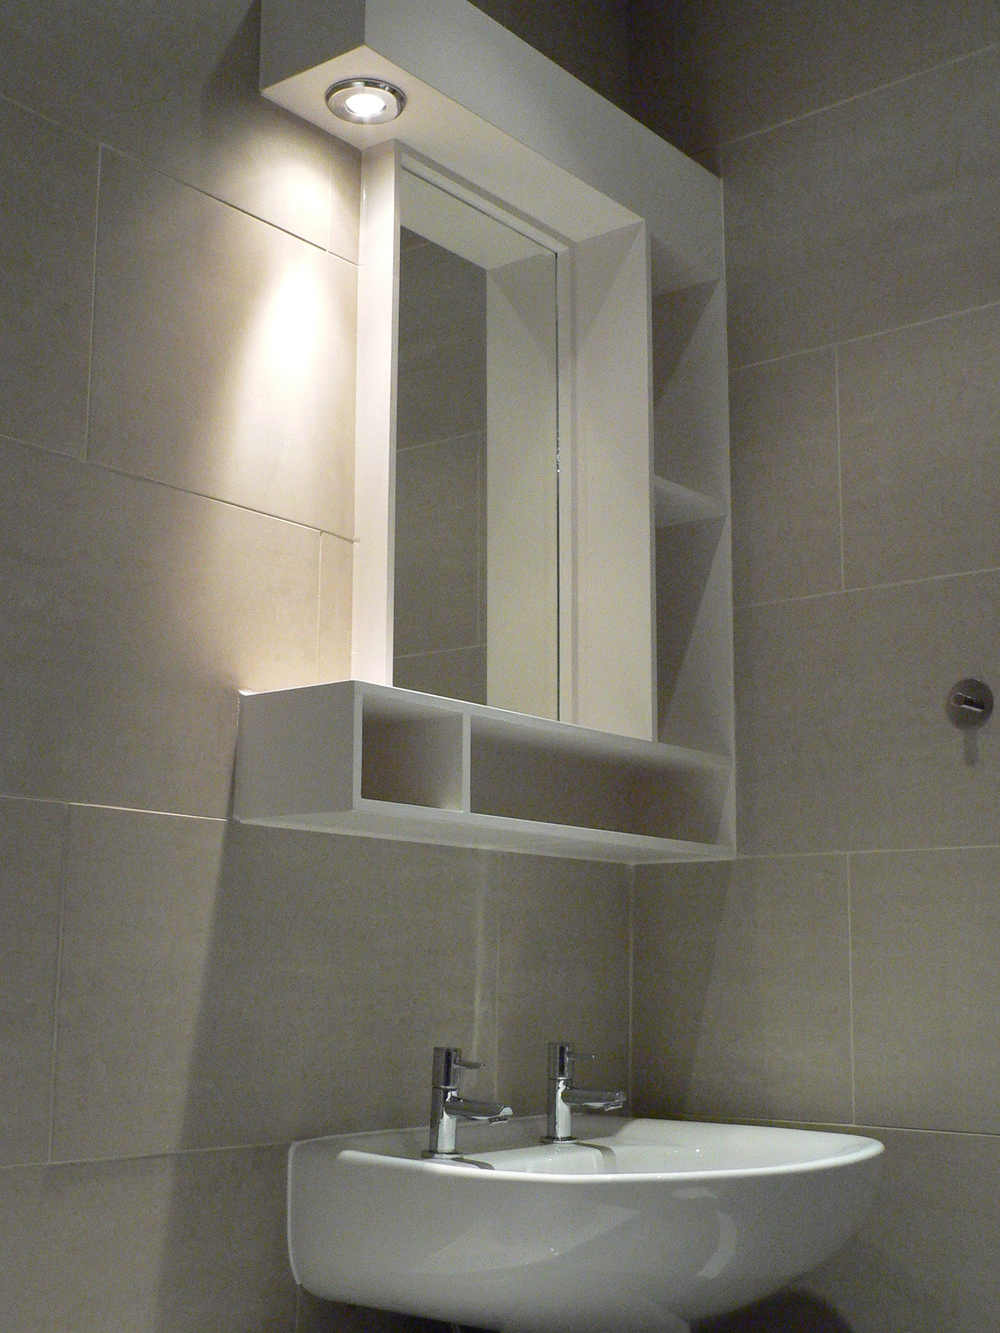 Heated mirror unit with lighting.JPG